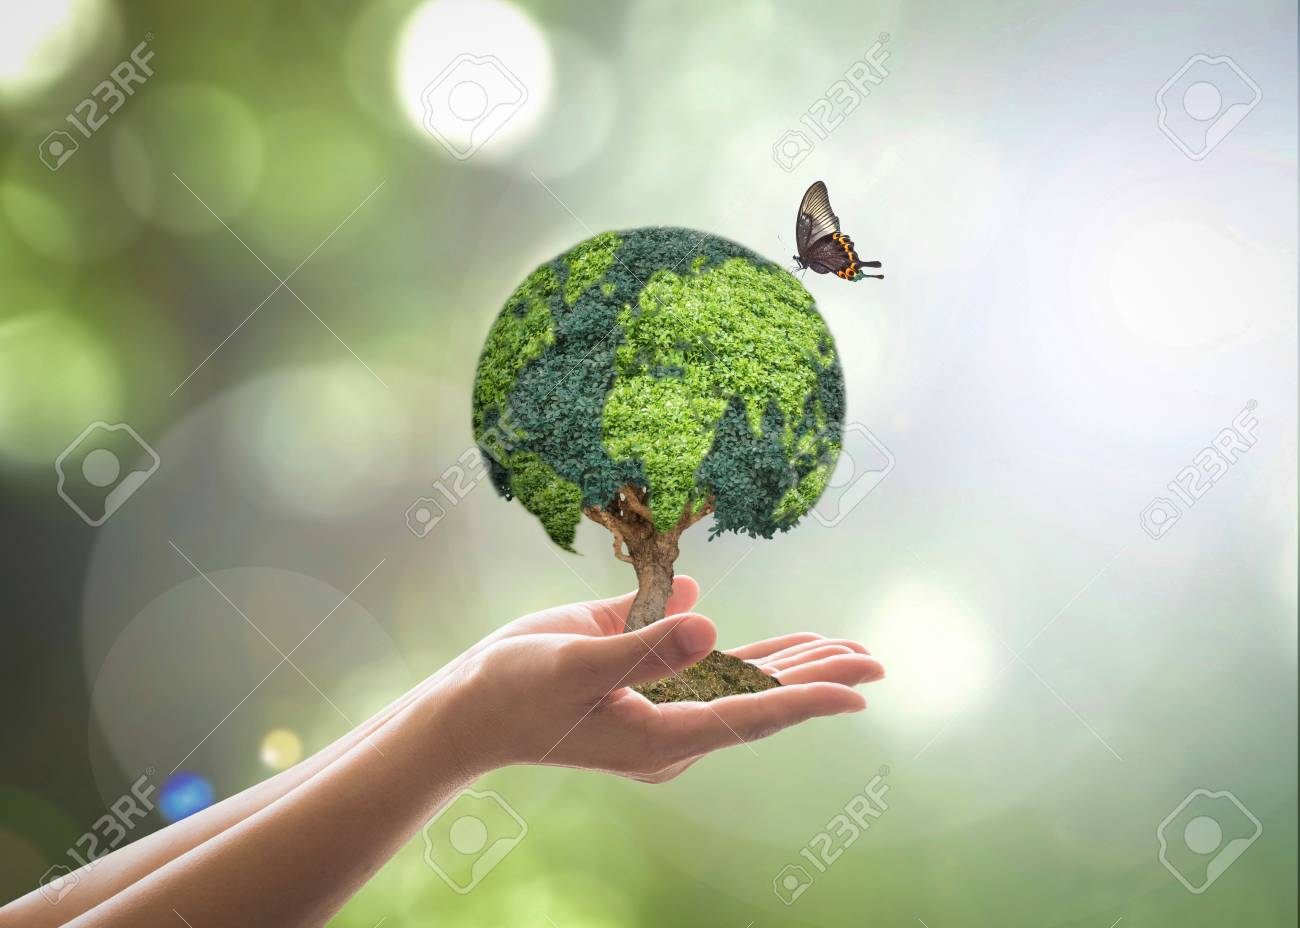 Green globe tree on volunteer's hand for sustainable environment and natural conservation in CSR concept - 112510958